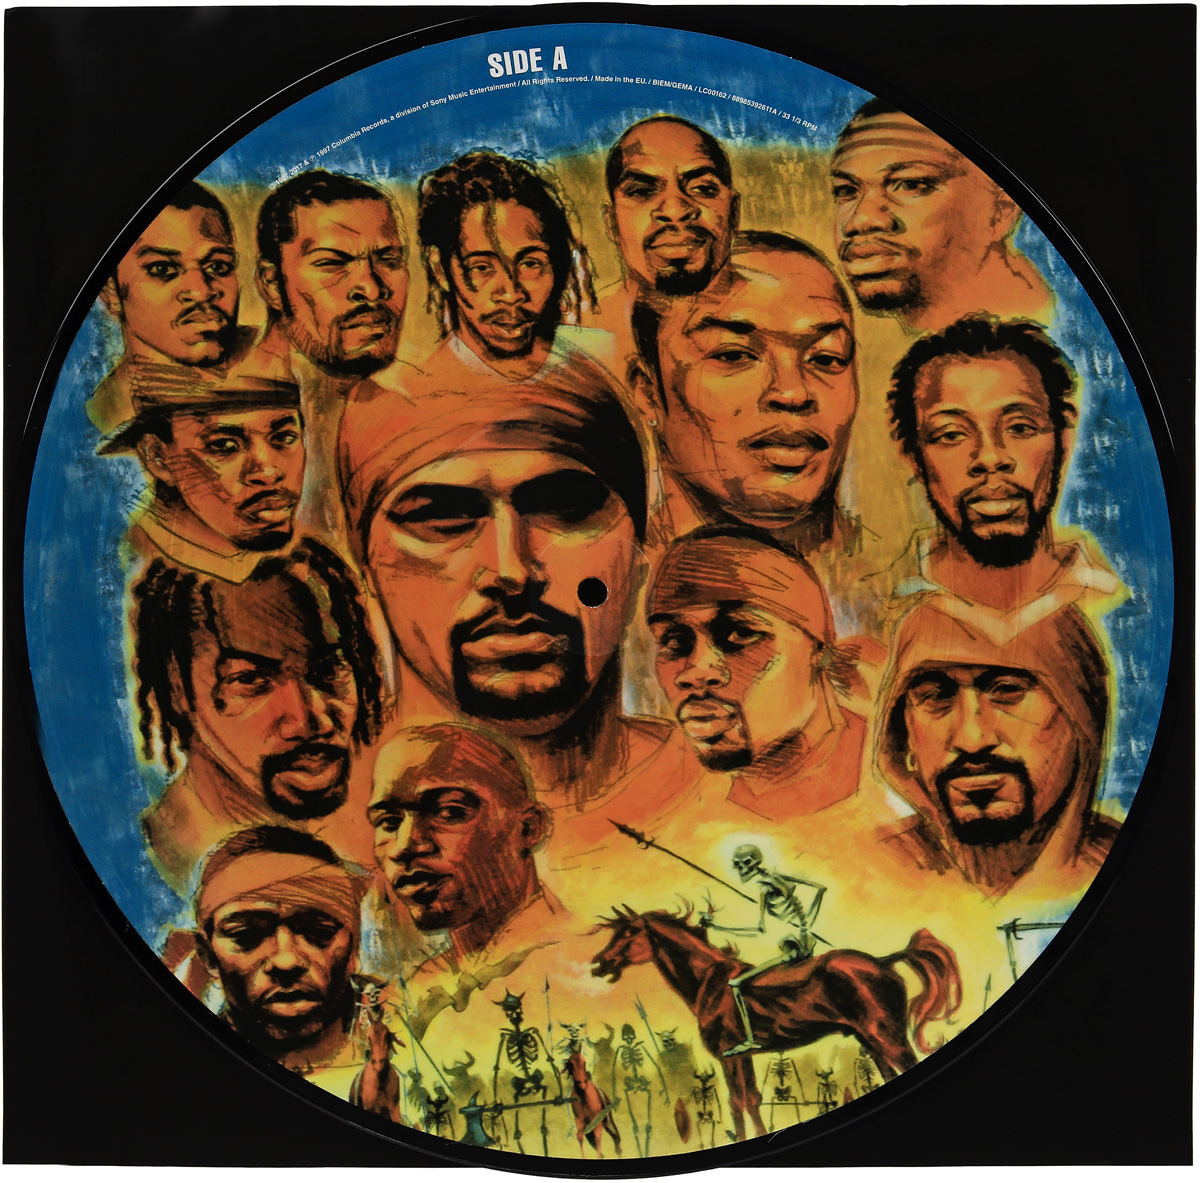 DJ Muggs Dj Muggs. The Soul Assassins. Chapter 1 (2 LP) dj muggs dj muggs the soul assassins chapter 1 picture disc